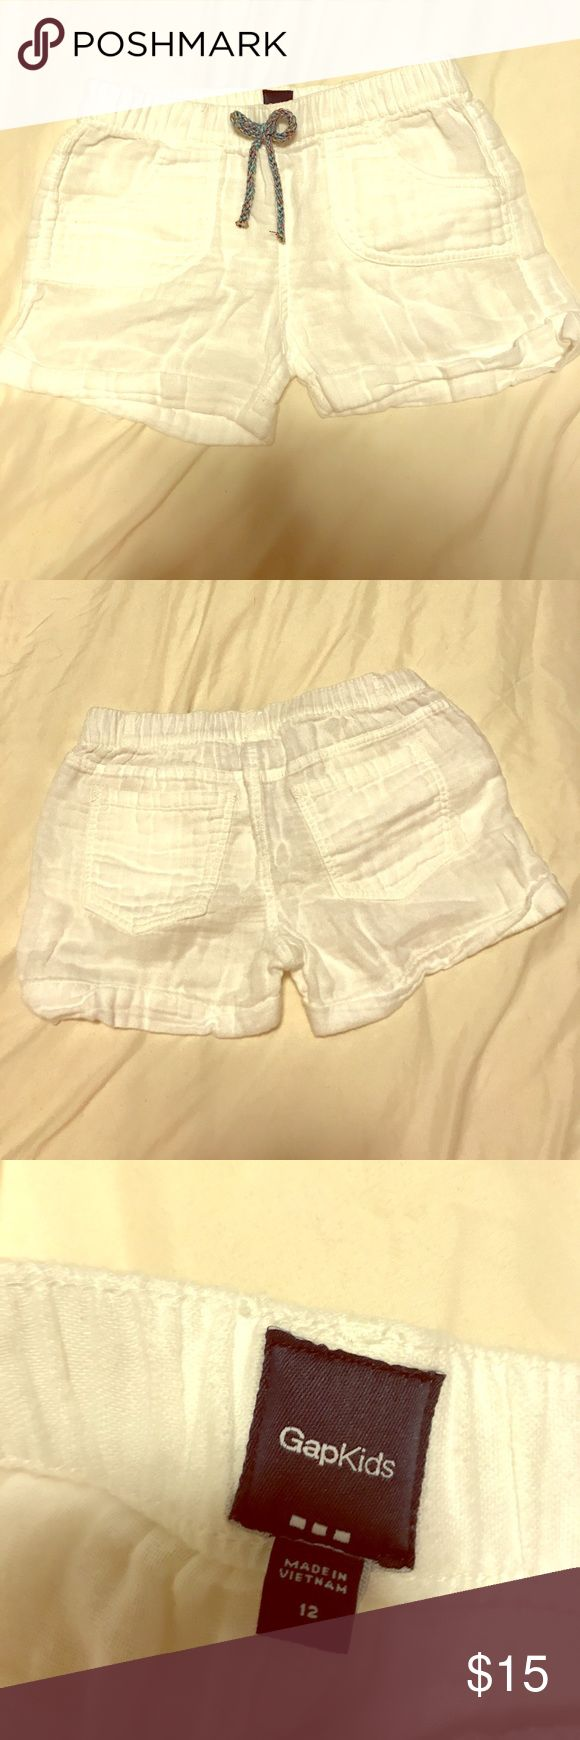 Gap kids white shorts Super cute white shorts size 12 for kids with a rainbow bow on the front Shorts